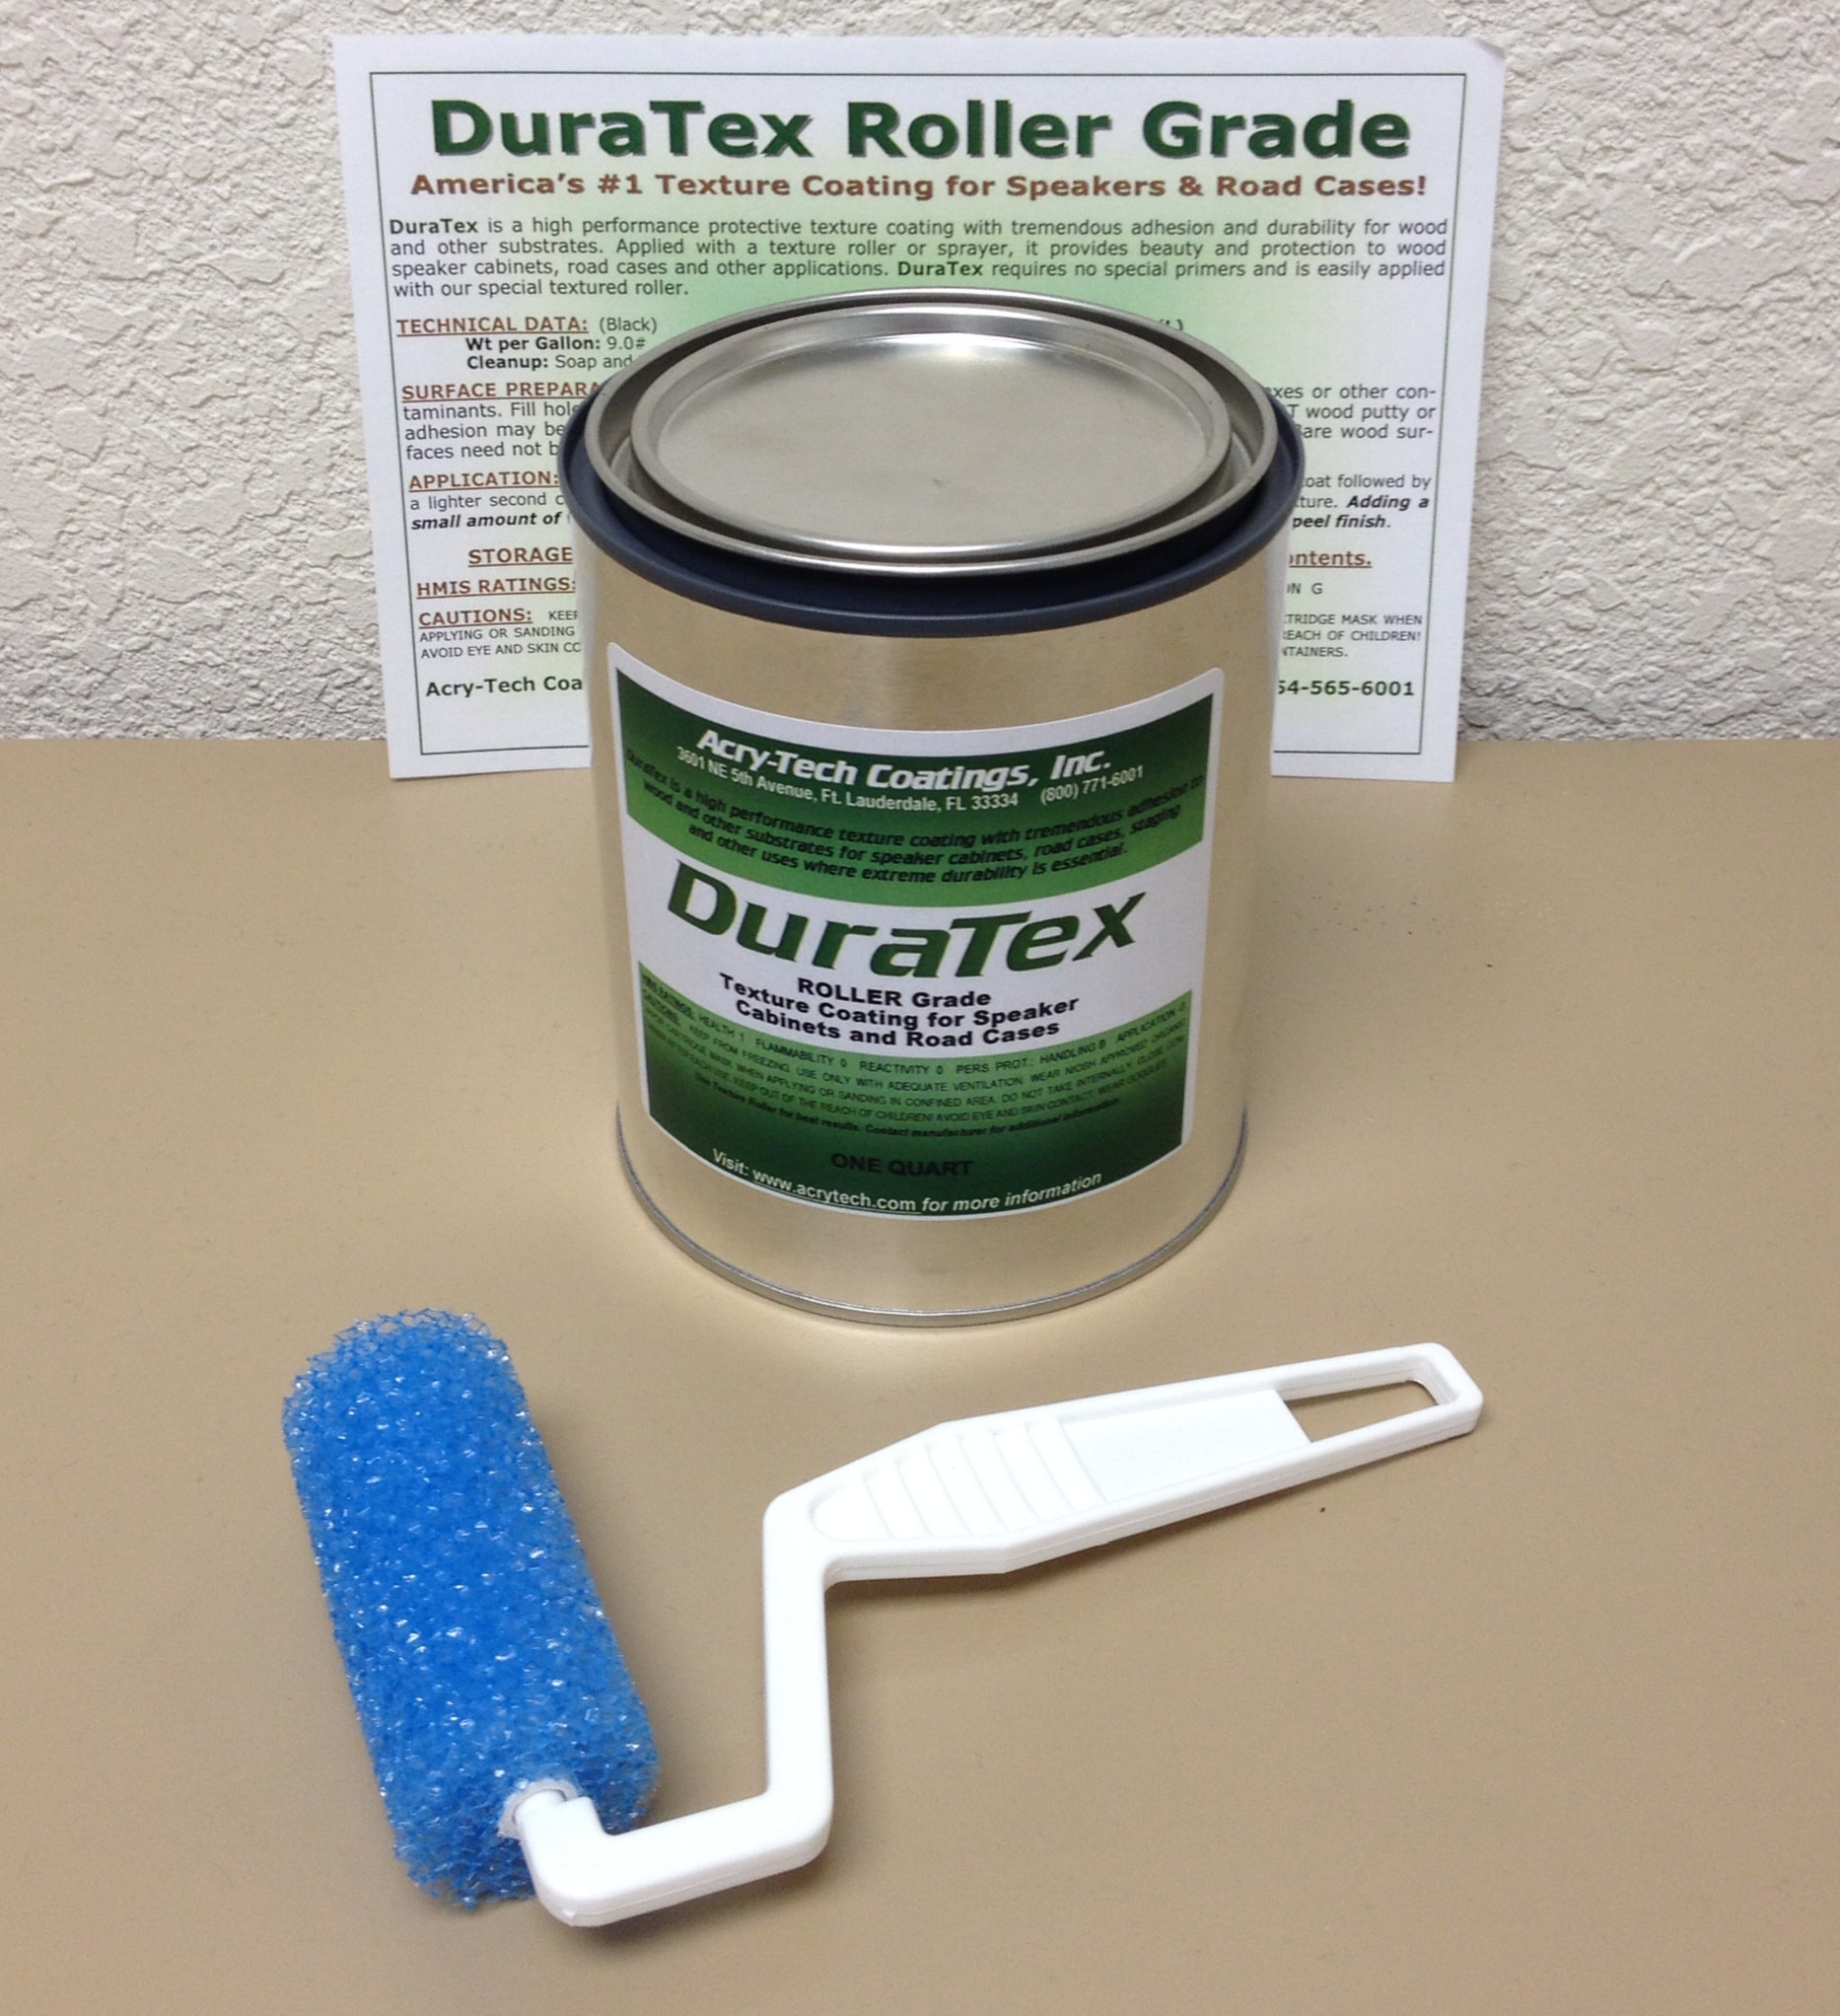 DuraTex Speaker Cabinet Texture Coating 1 Quart Roller Grade White Kit